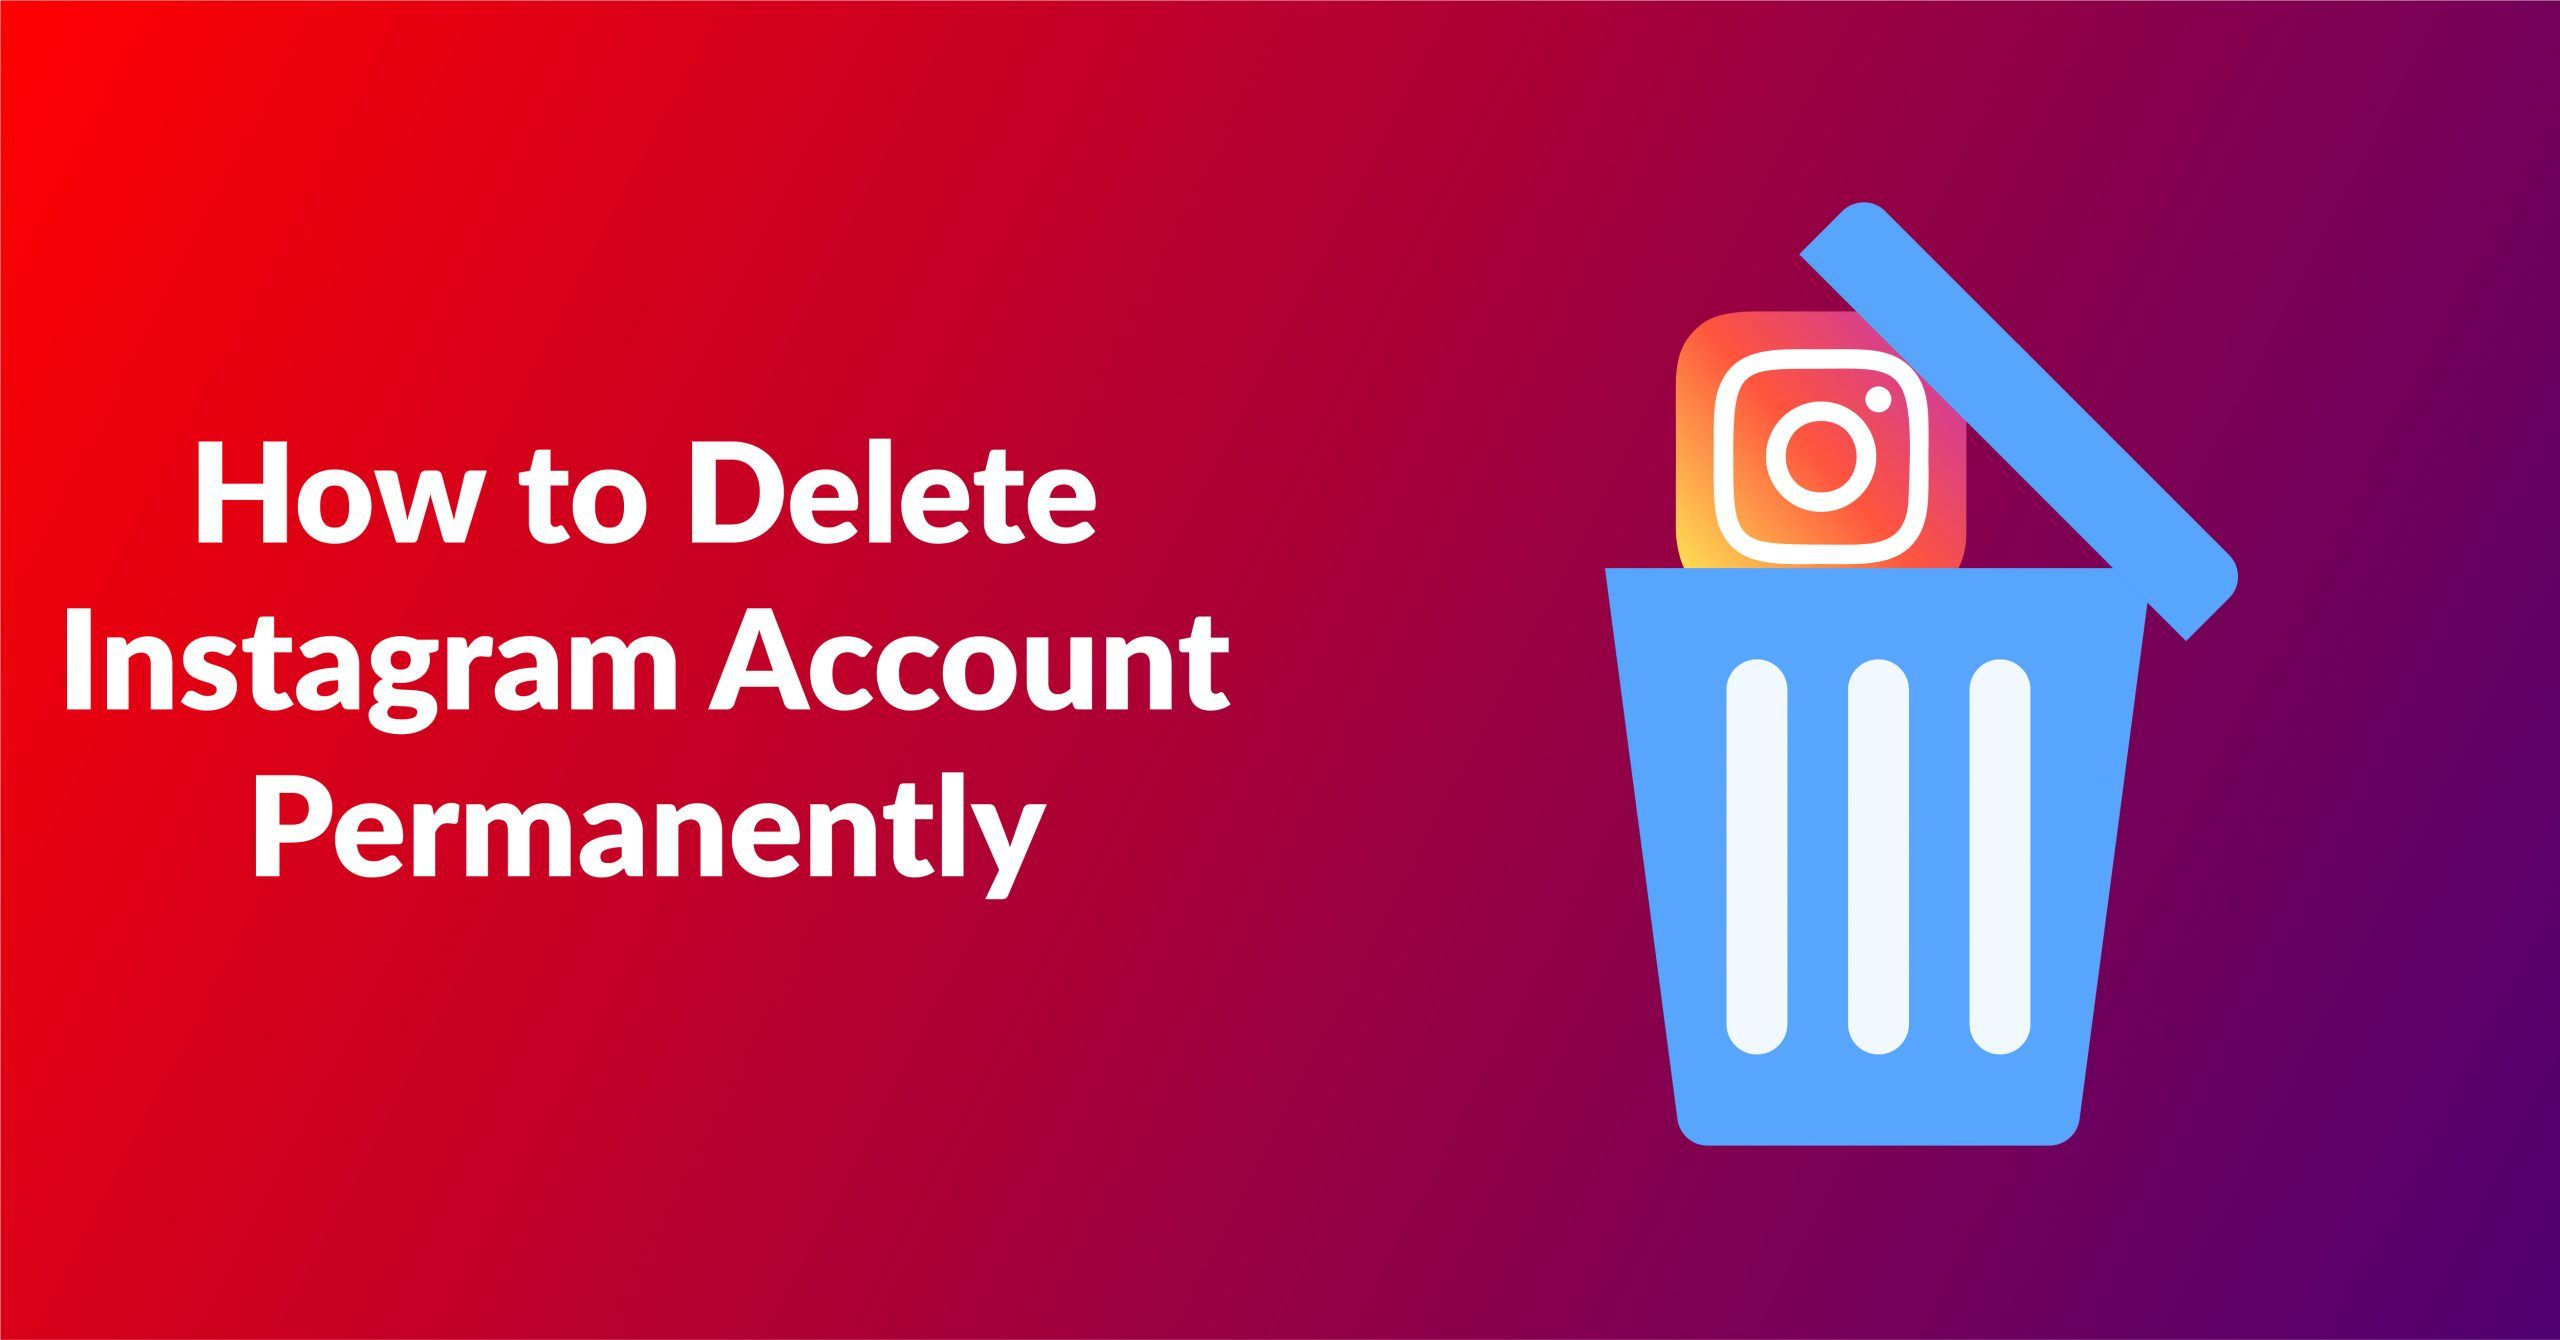 How to Permanently Delete or Temporary disable Instagram Account in 2021